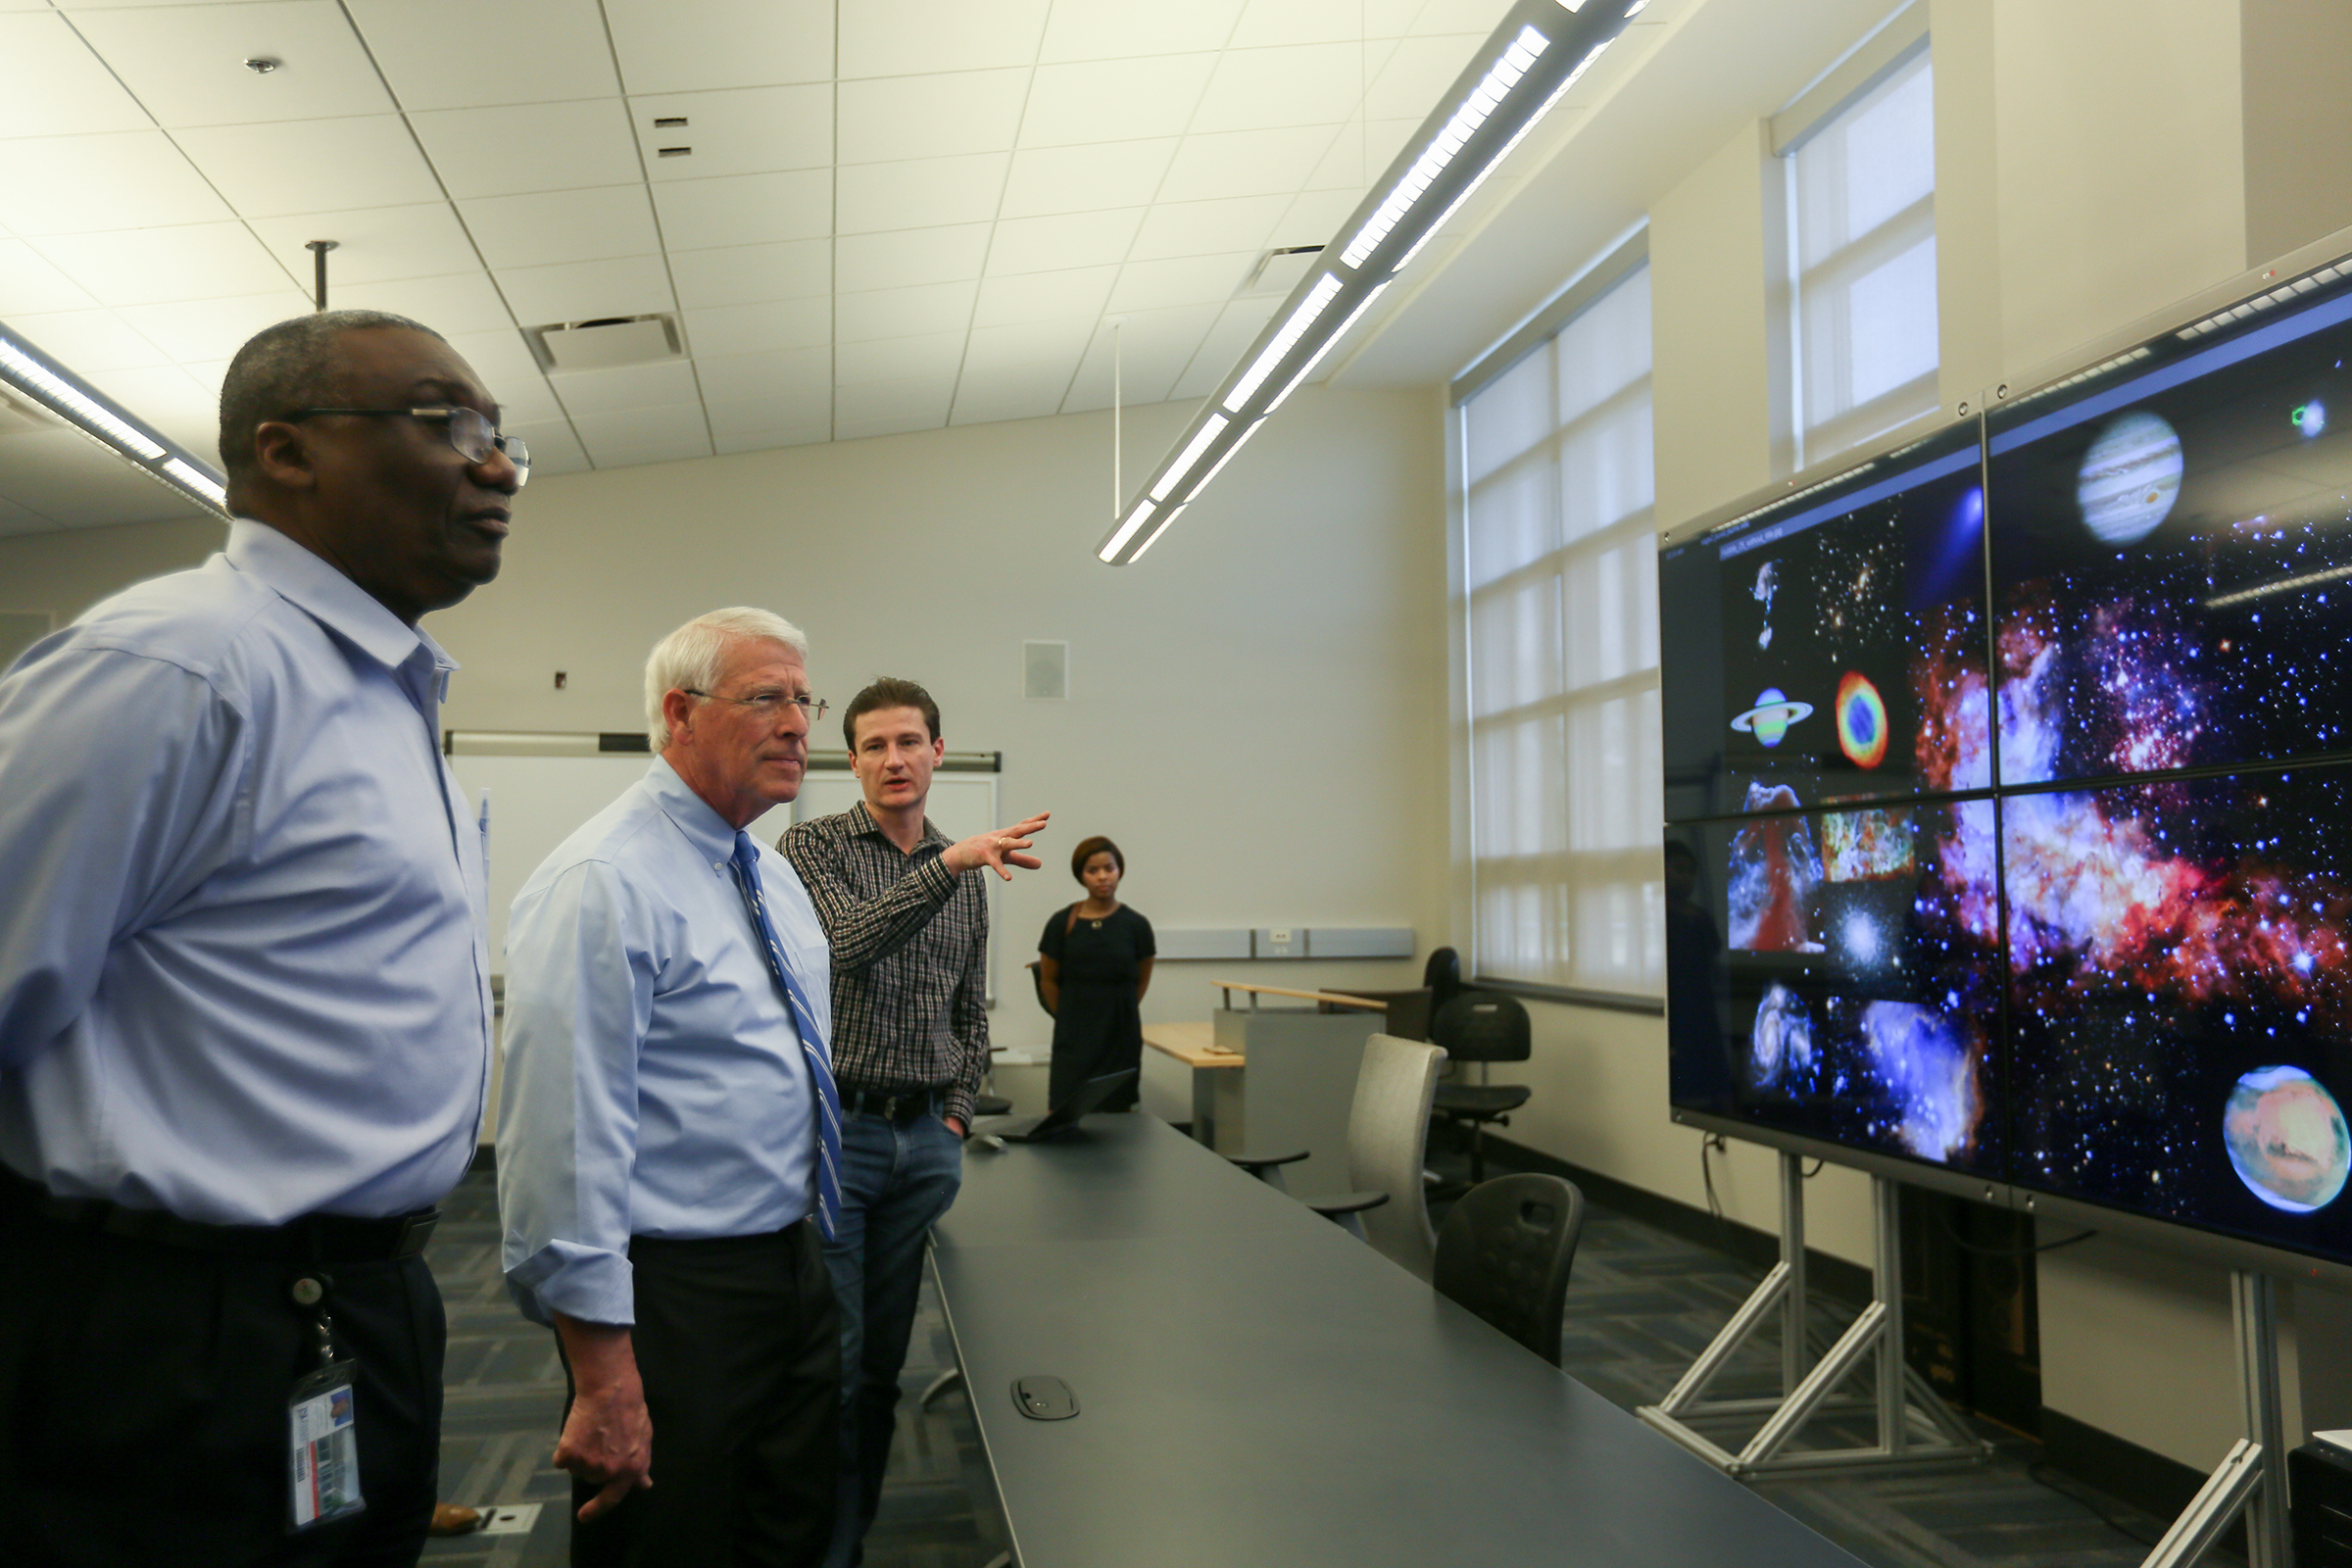 Showcasing some of CSET's latest technology, JSU professors explain aspects of the solar system to Wicker. (Photo by Aron Smith/JSU)